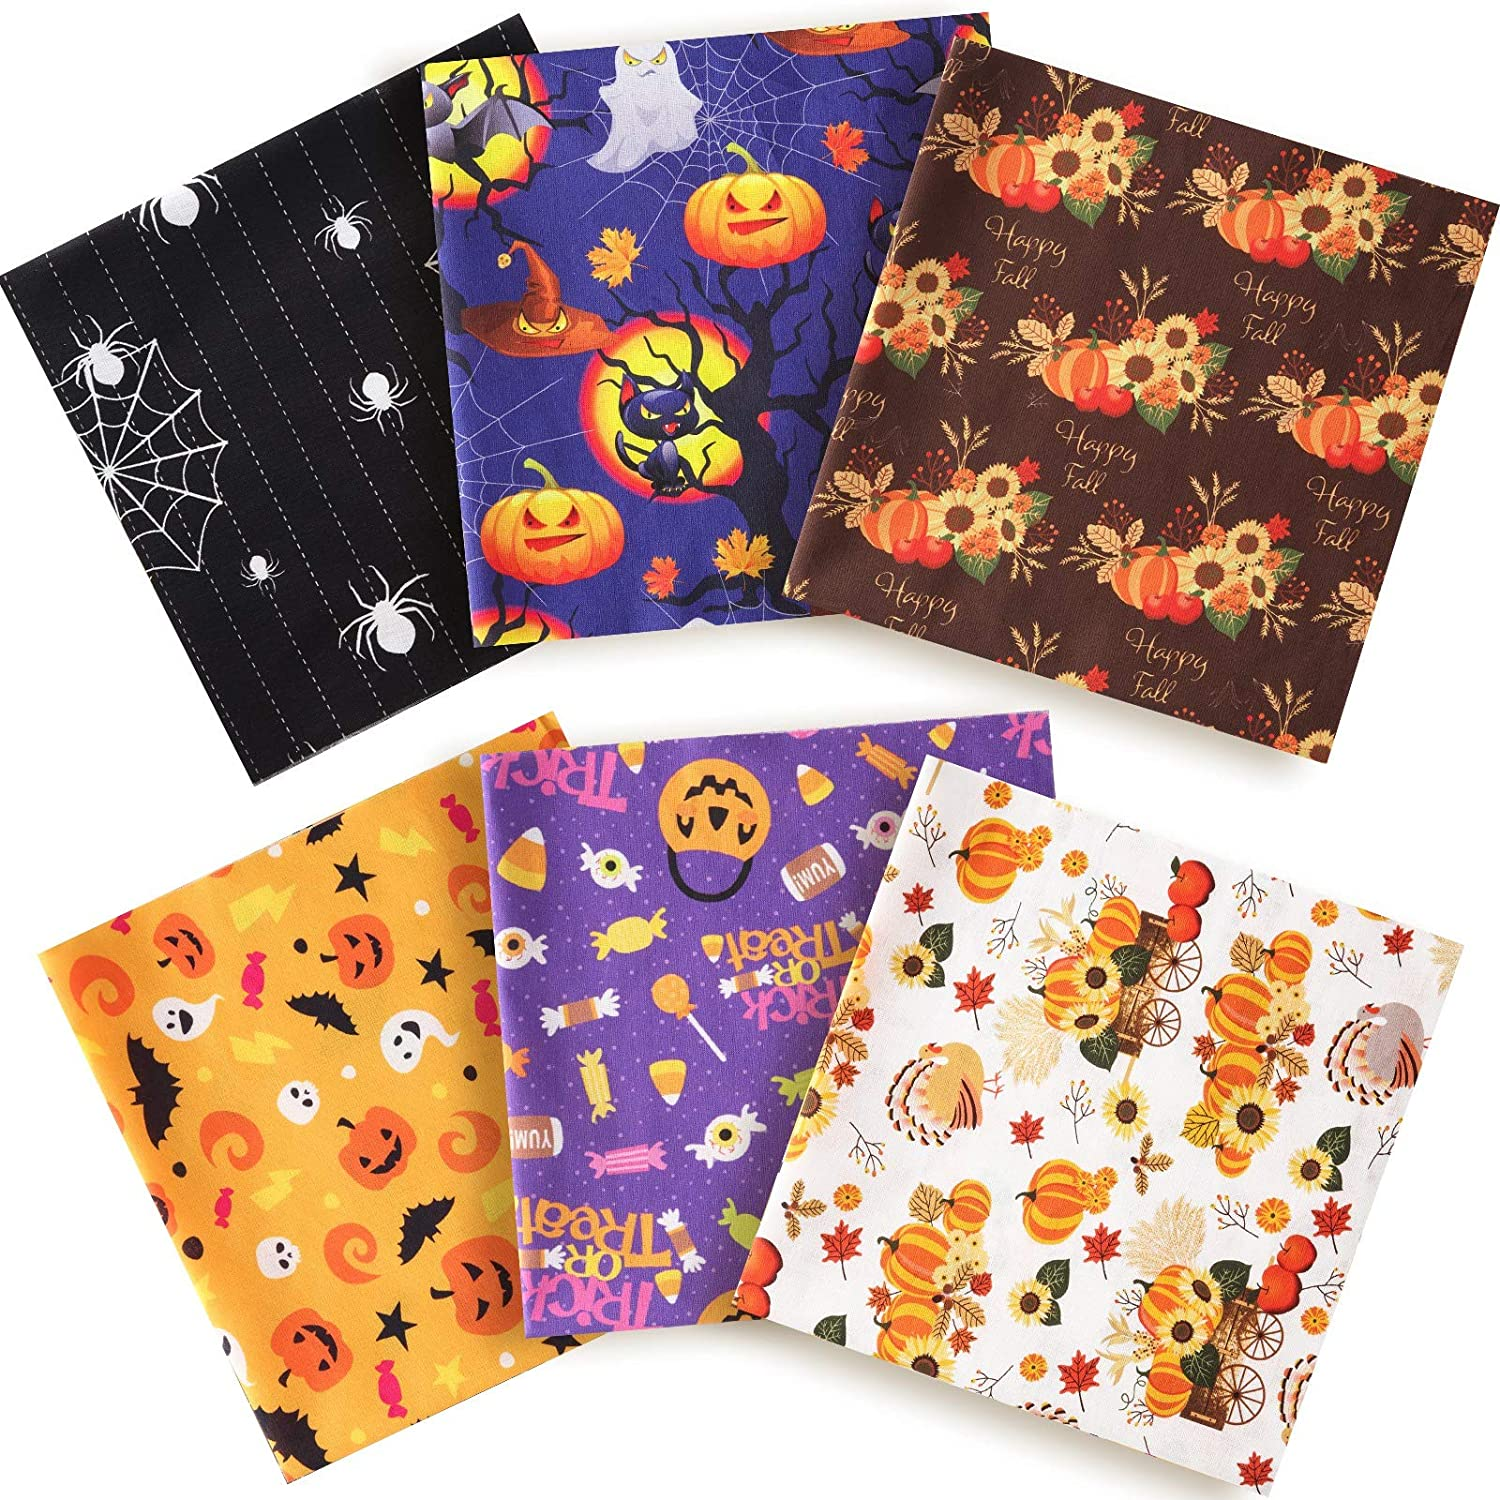 Cotton Printed Fabric Halloween